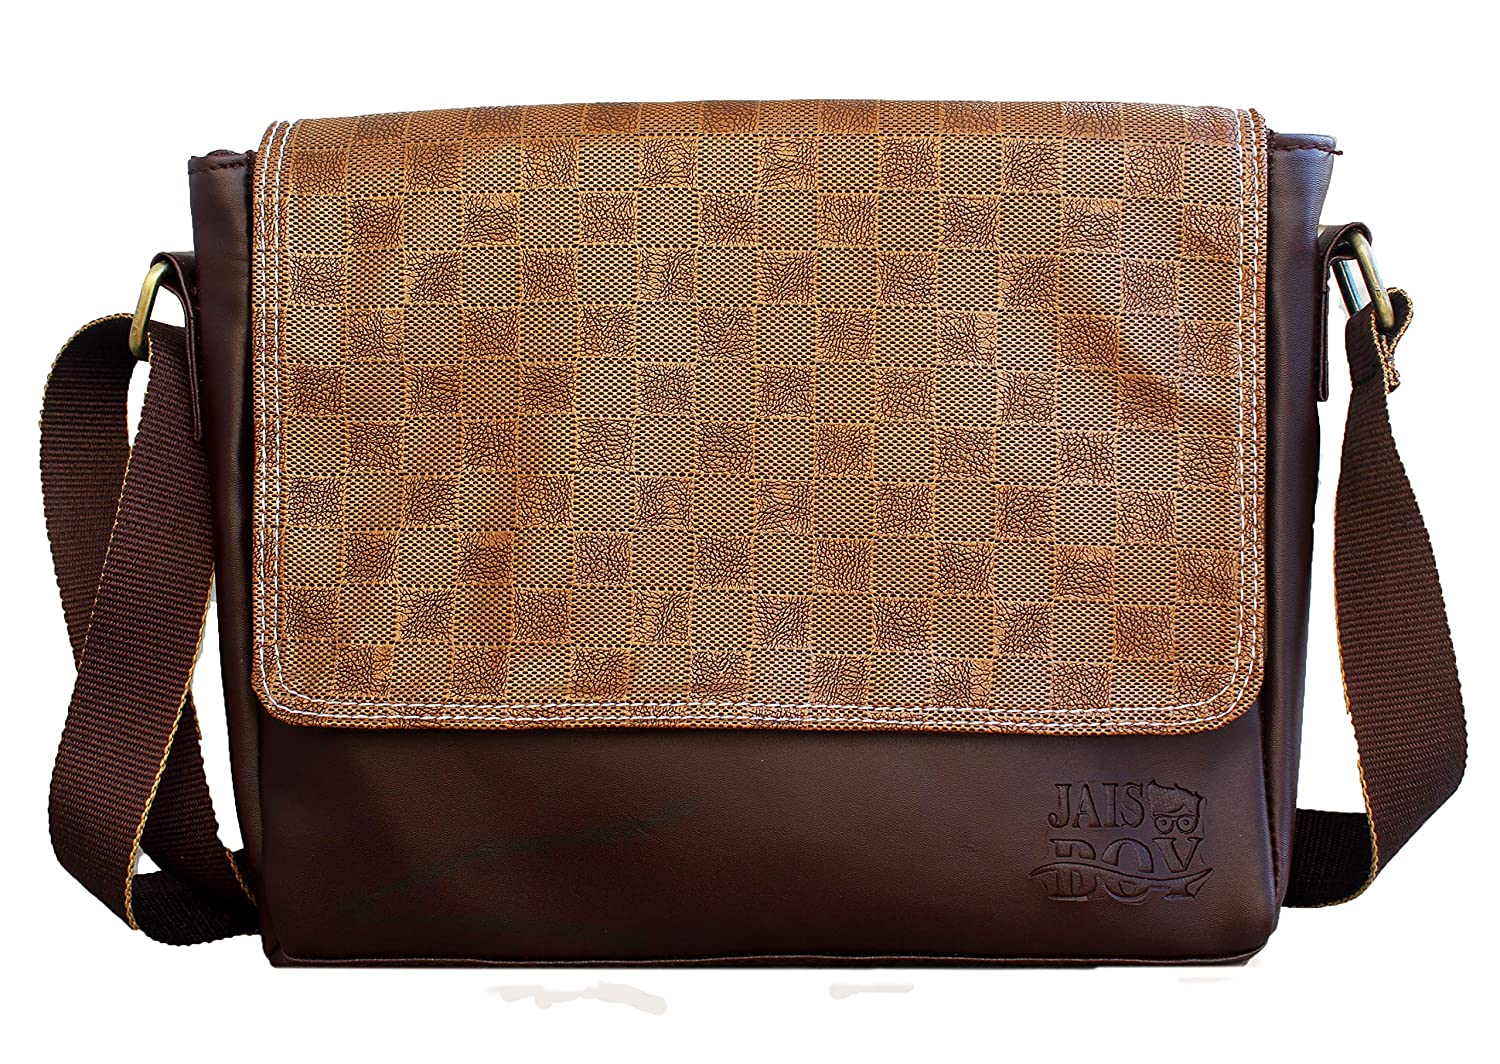 b08429848364 Buy Future Fashion Pu Leather Trendy Rust Cross-Body Sling Bag Side Bag for  Men Women   Girls for Daily Use 10 Inch (Brown) Online at Low Prices in  India ...